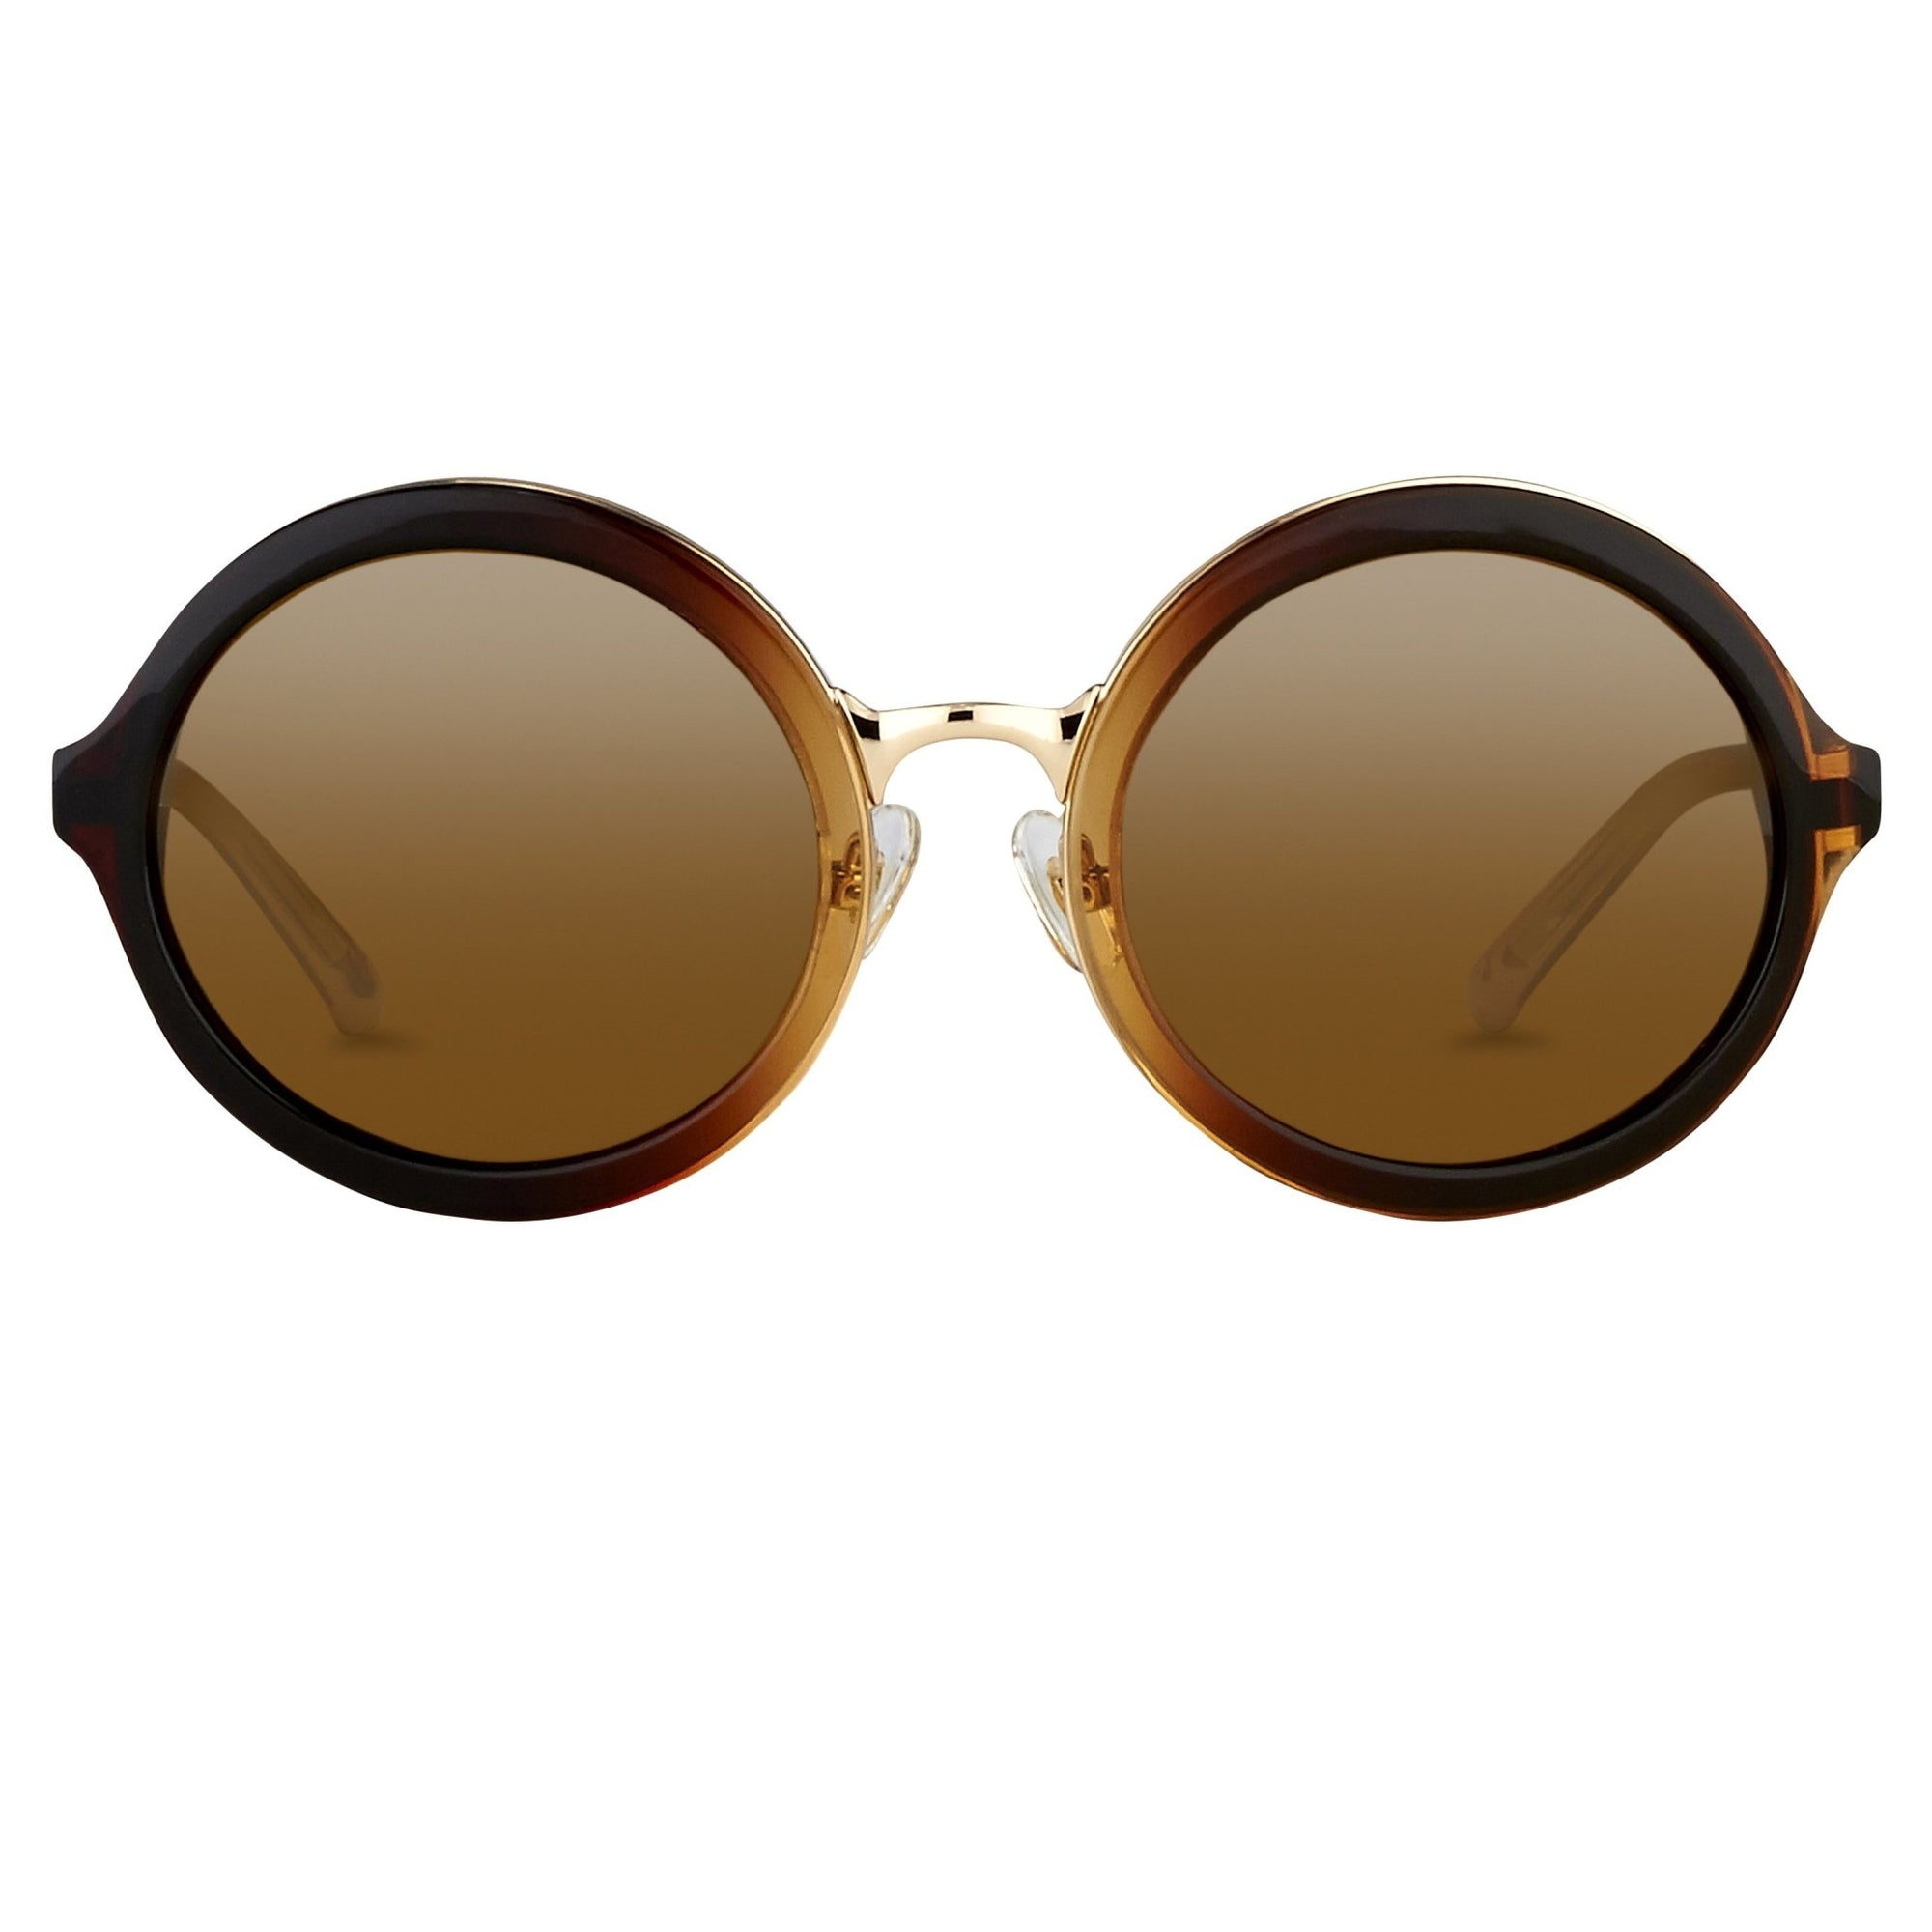 Phillip Lim Sunglasses Unisex Round Brown Mocha Gradient Frame with CAT2 Medium Brown Lenses PL11C29SUN - Watches & Crystals